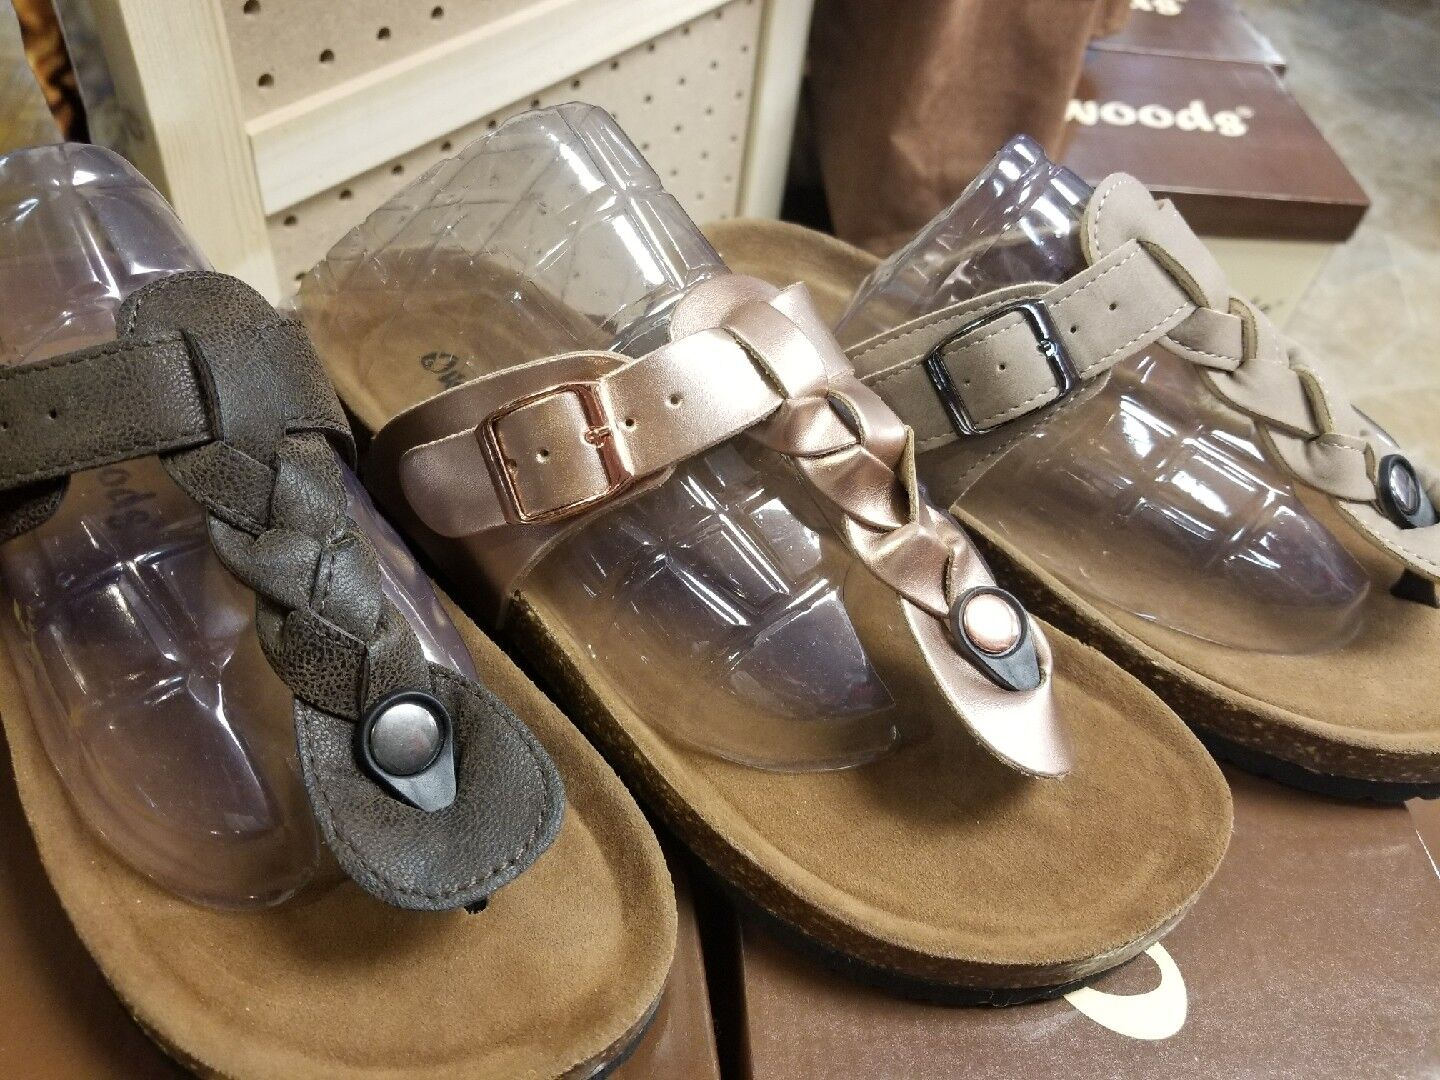 OUTWOODS BRAIDED SANDALS ROSE GOLD TAUPE BROWN SIZE 5, 6, 11 7, 8, 9, 10, 11 6, b20df9